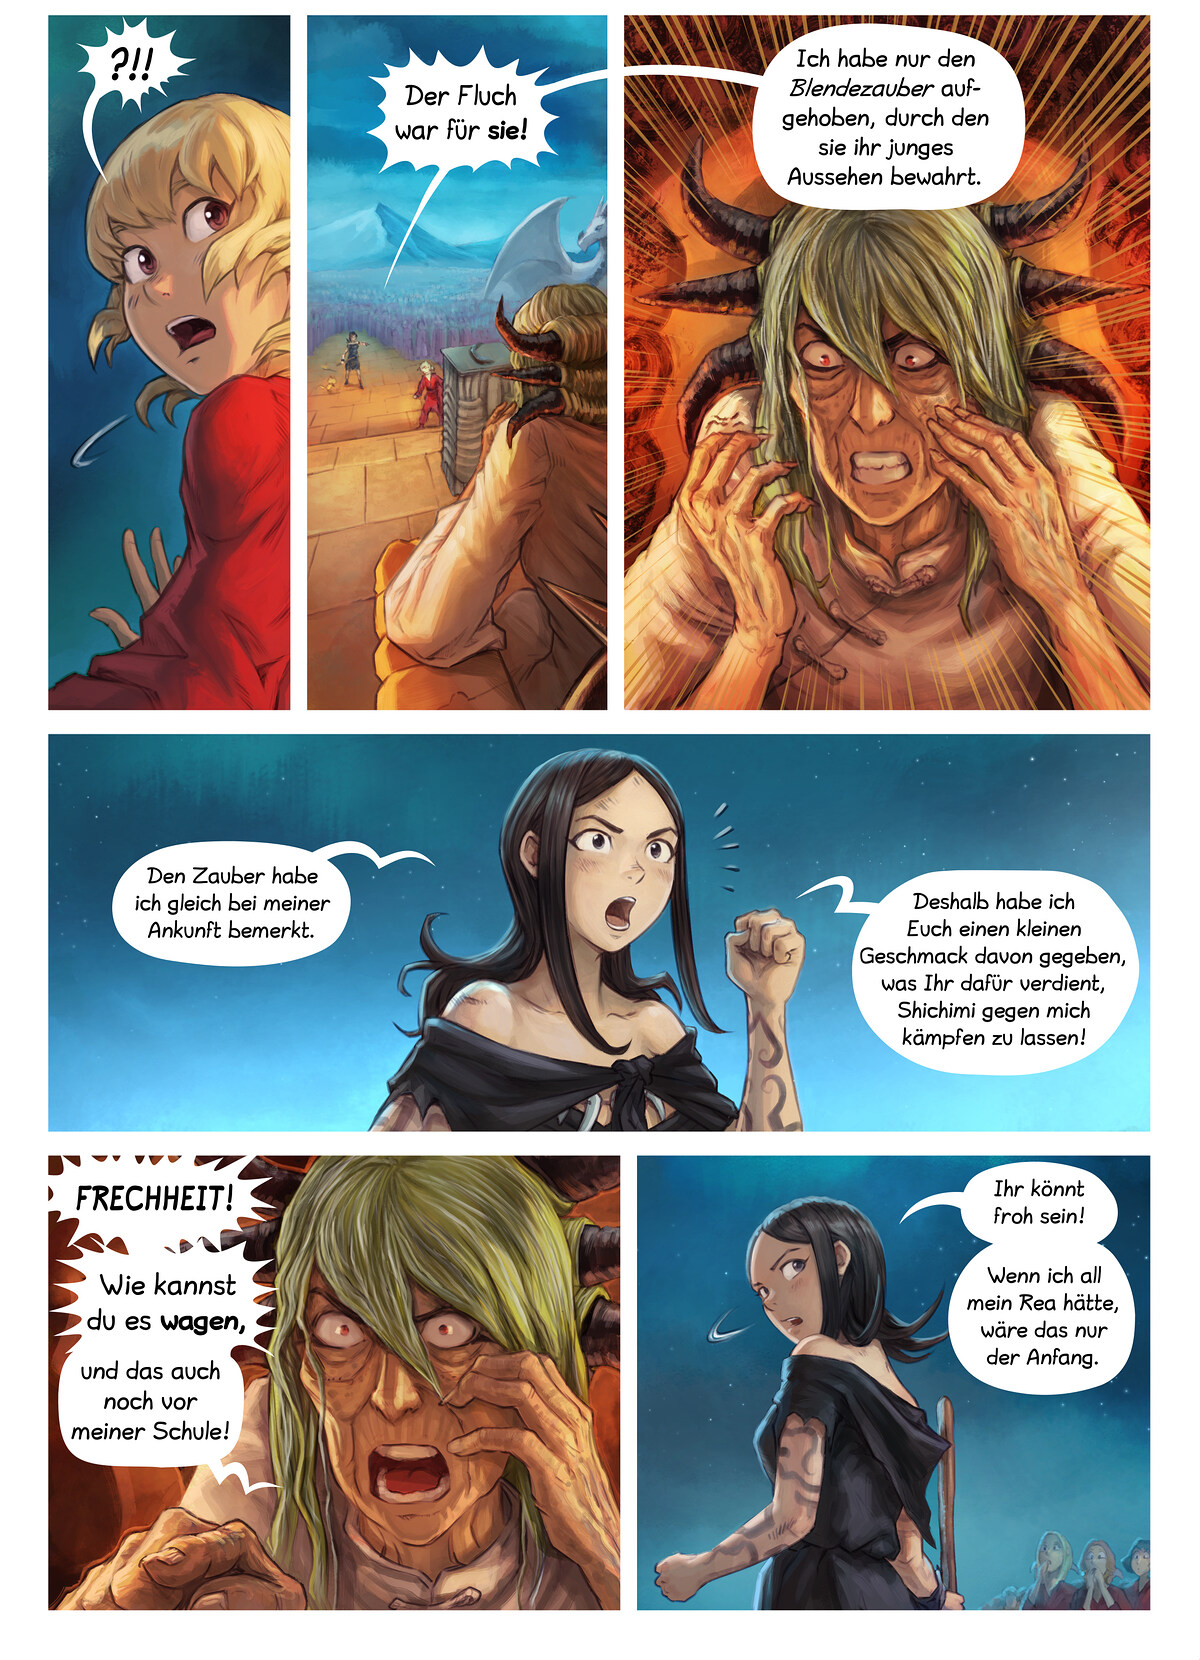 Episode 34: Shichimis Abschluss, Page 8